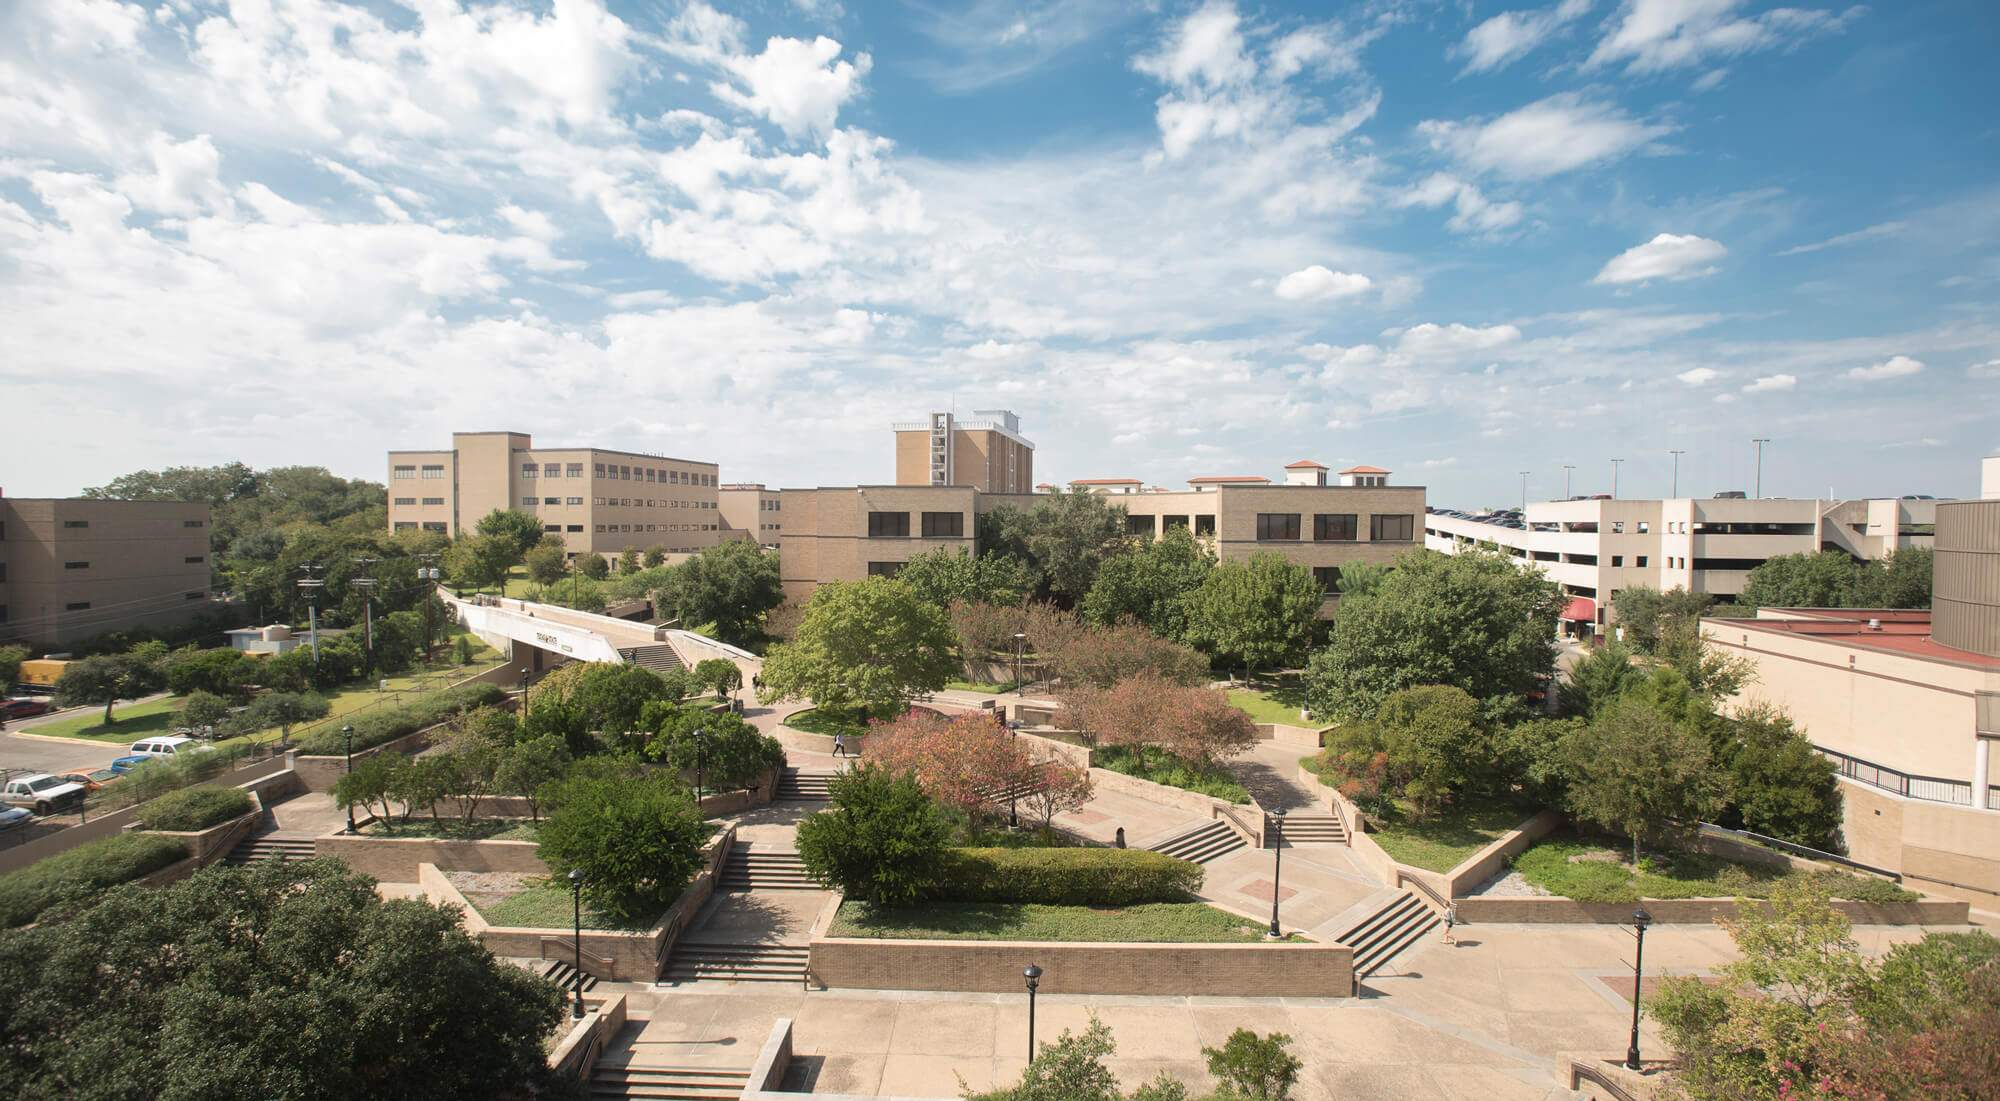 a view of west campus